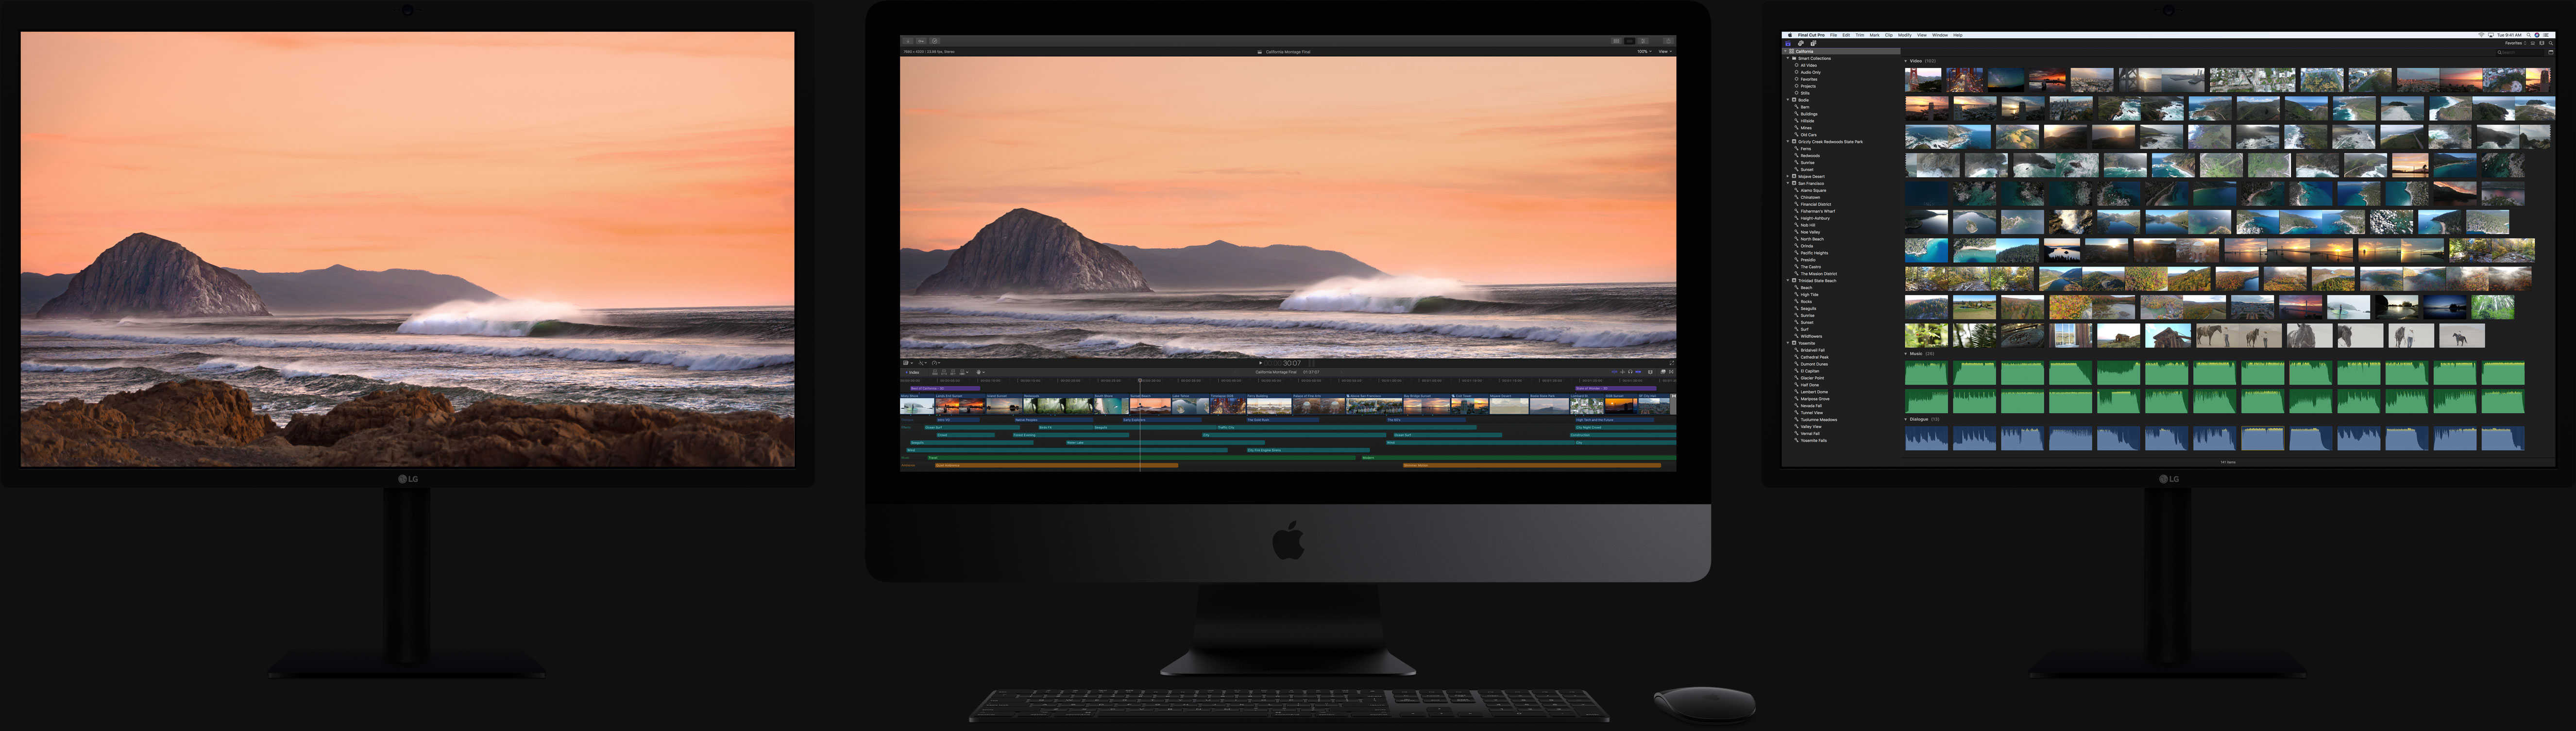 Final Cut Pro X 10 4 launches with support for HDR, HEVC/HEIF, 360